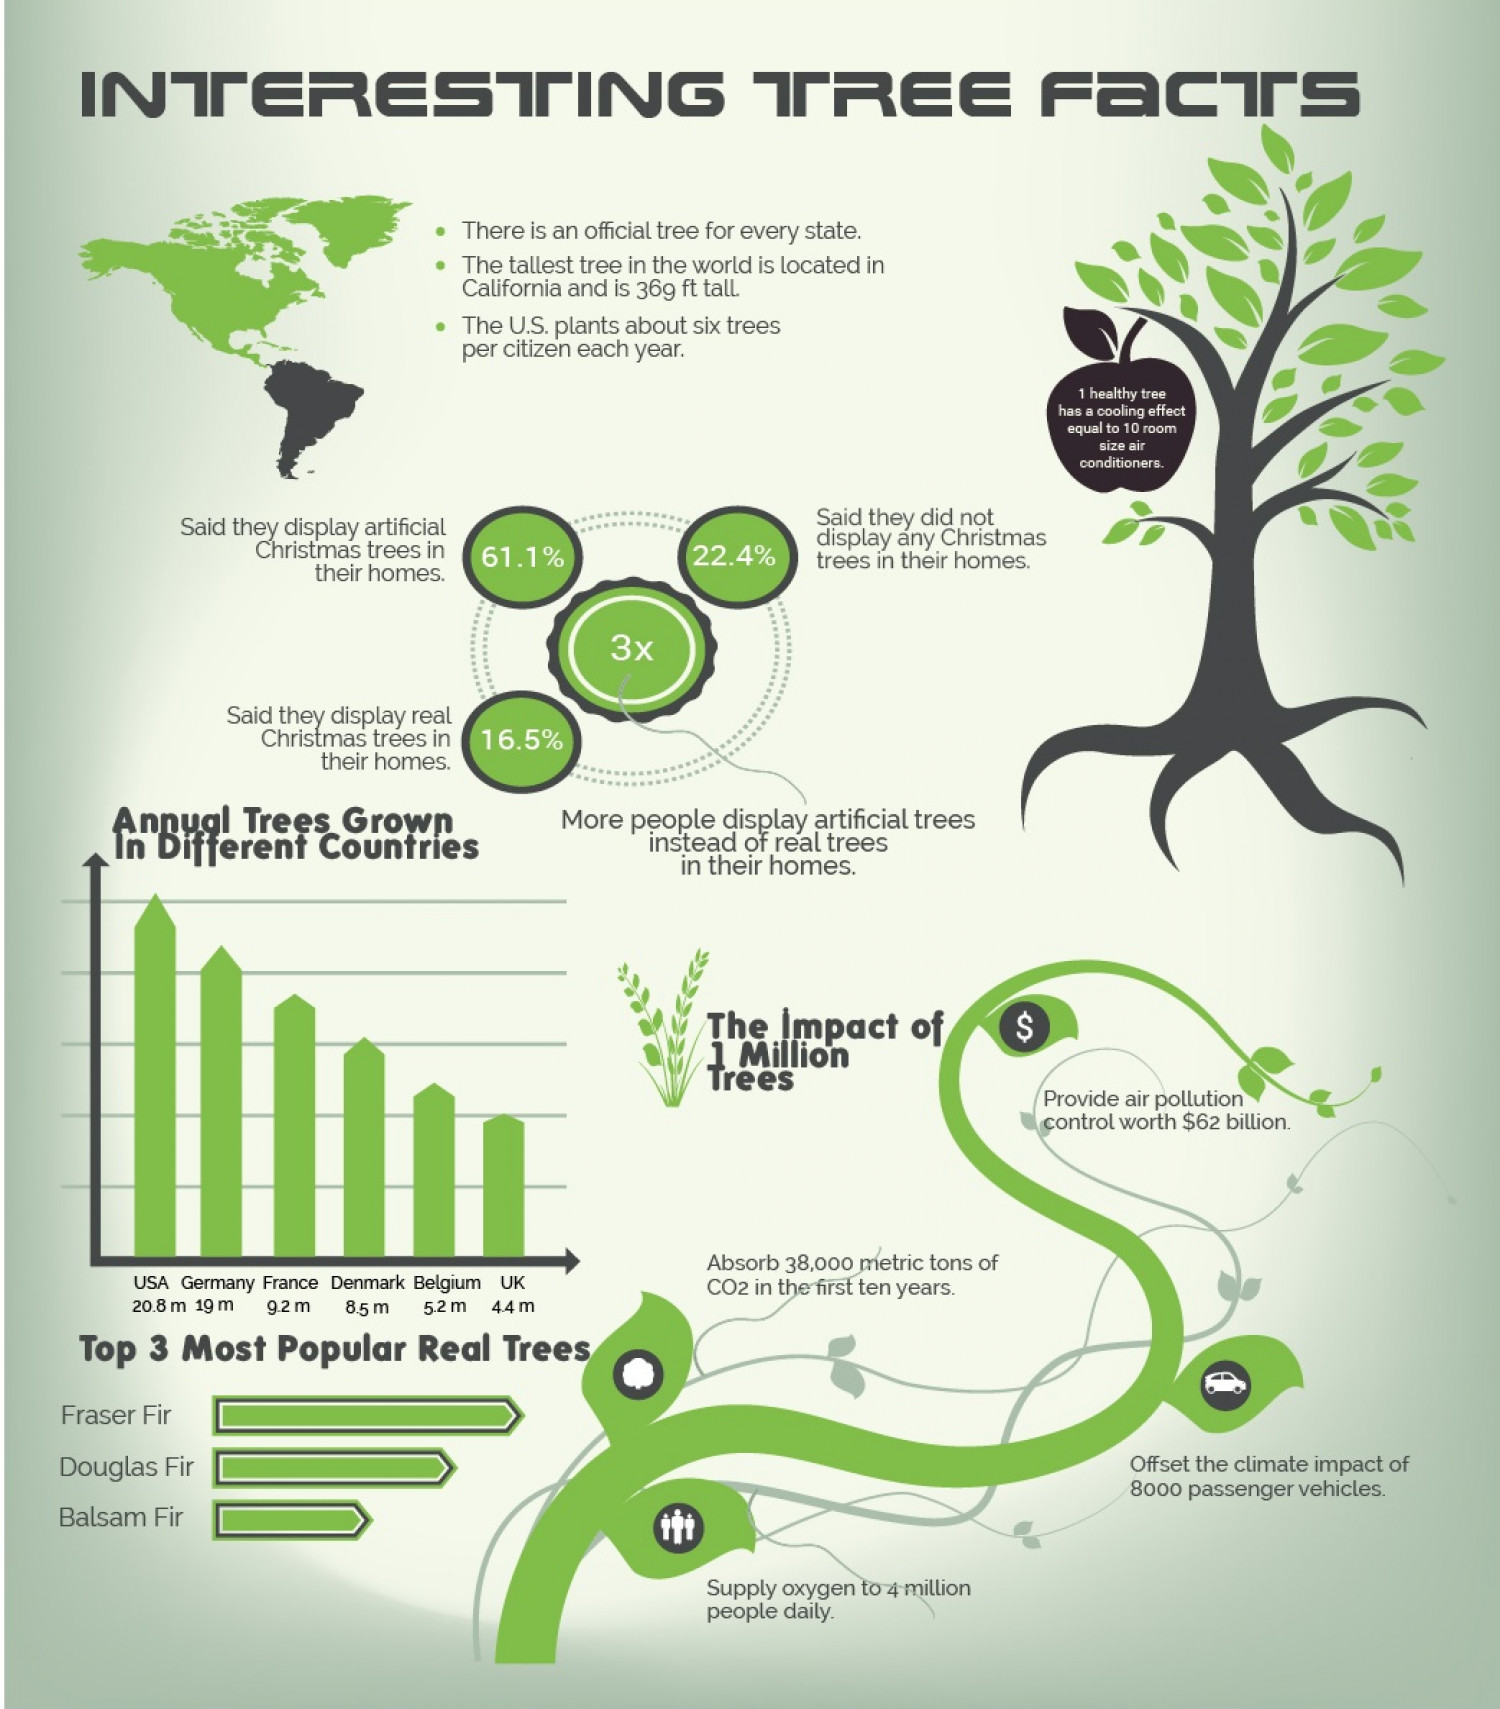 Interesting Tree Facts Infographic